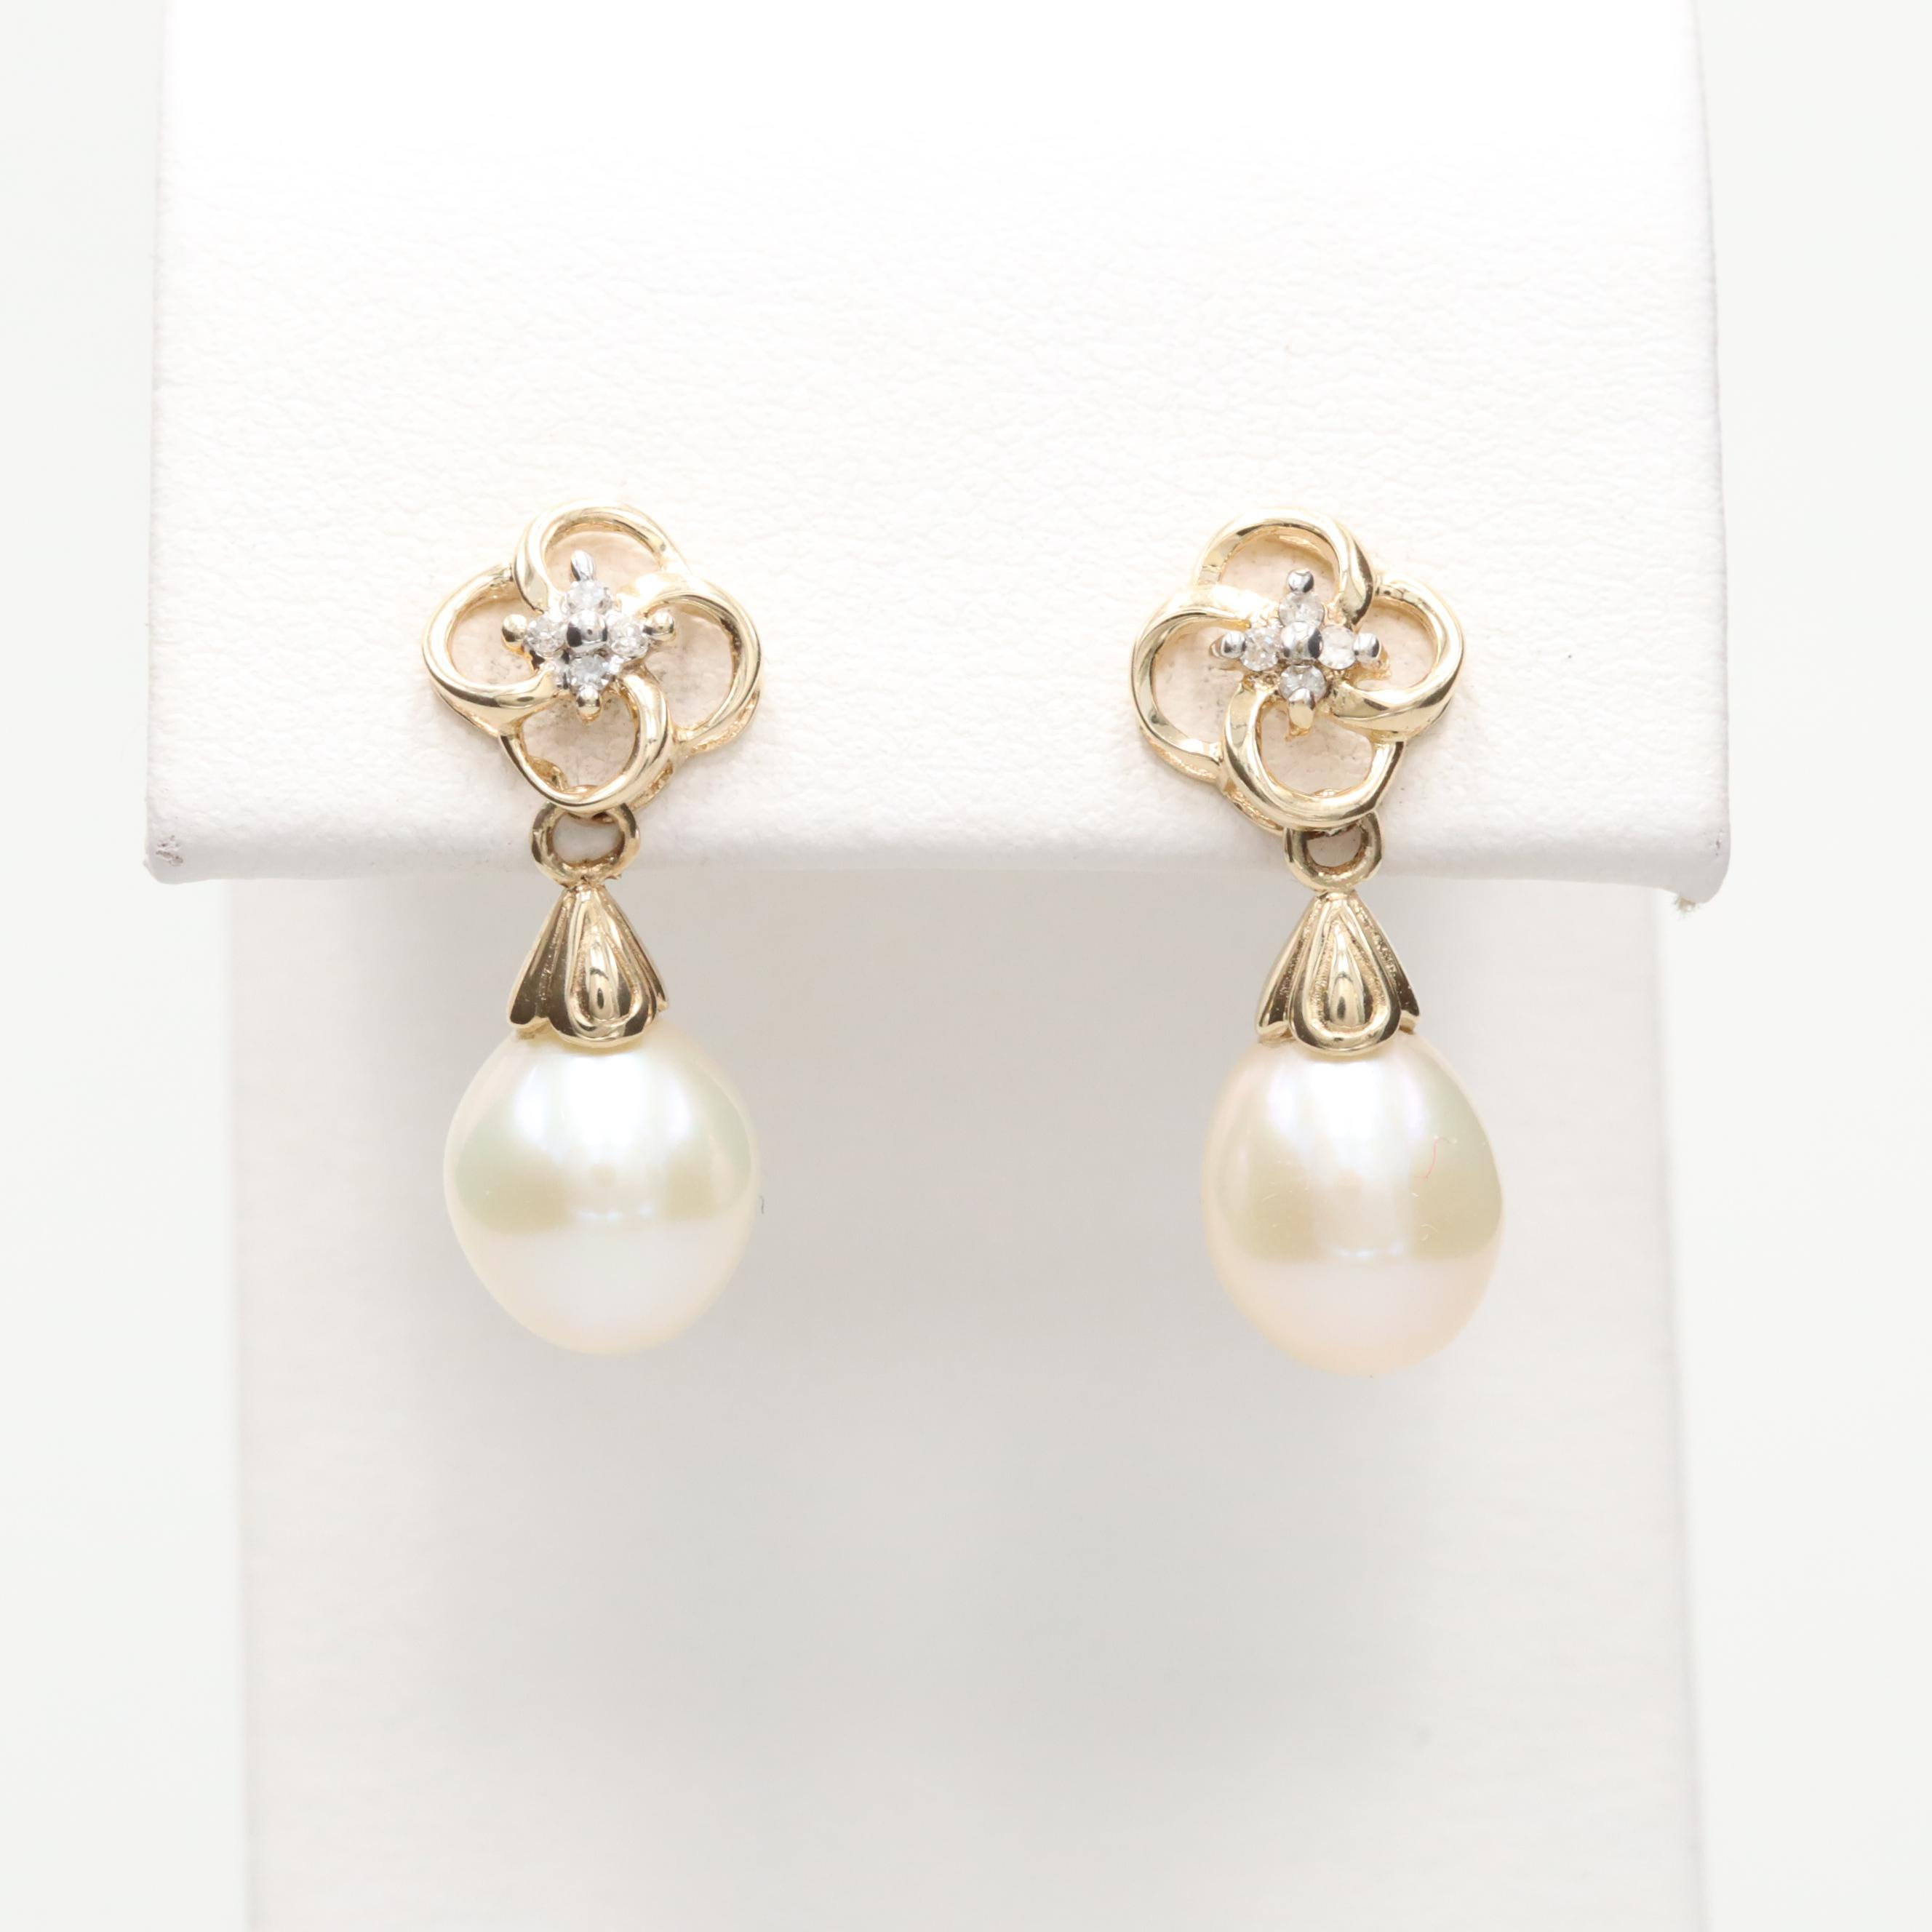 Alwand Vahan 10K and 14K Yellow Gold Cultured Pearl and Diamond Earrings